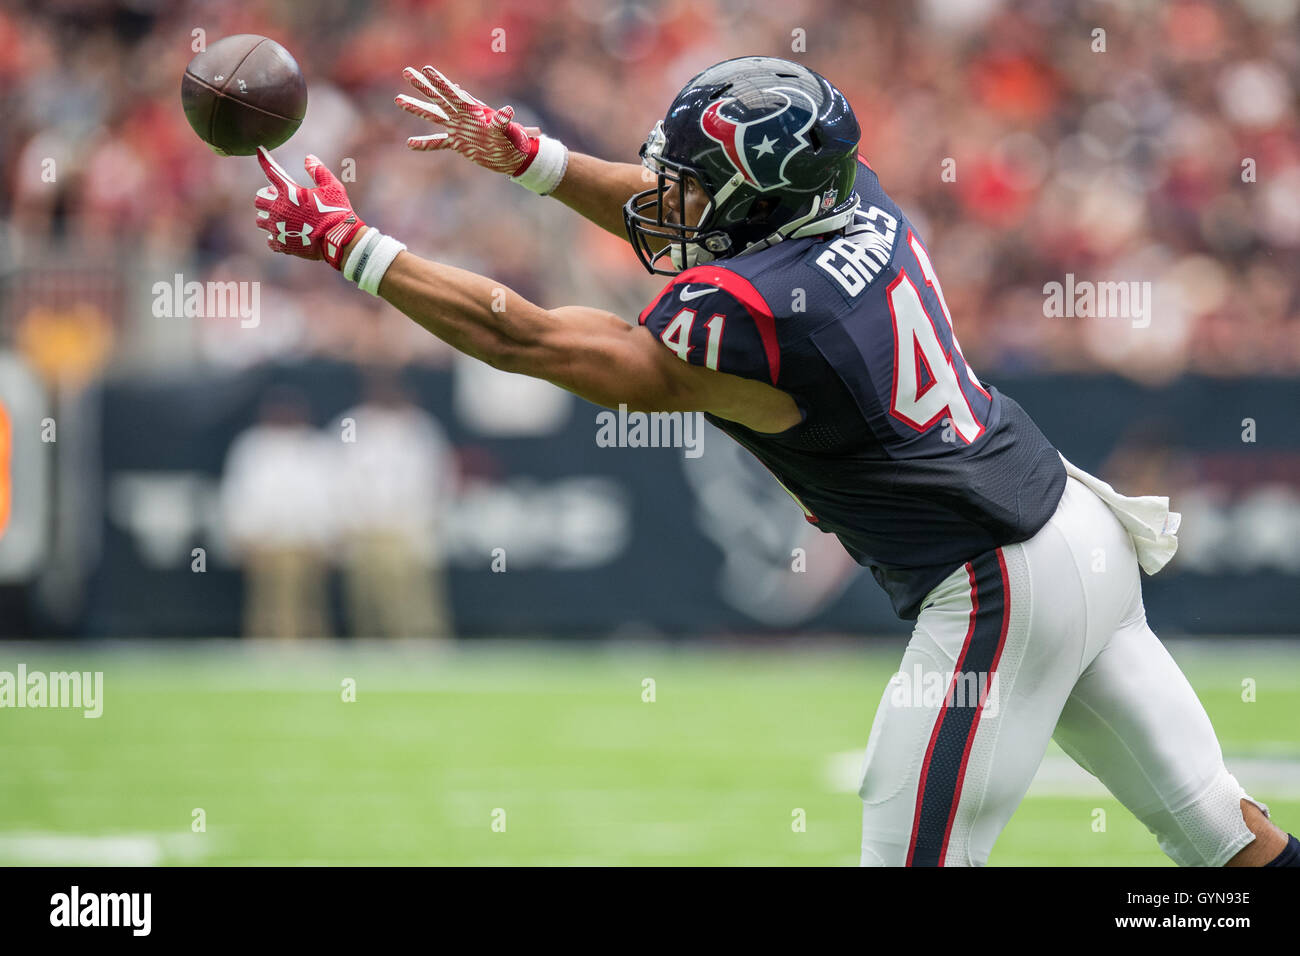 Houston, Texas, USA. 18 Sep, 2016. Running back des Houston Texans Jonathan Grimes (41) tente de faire une prise Photo Stock